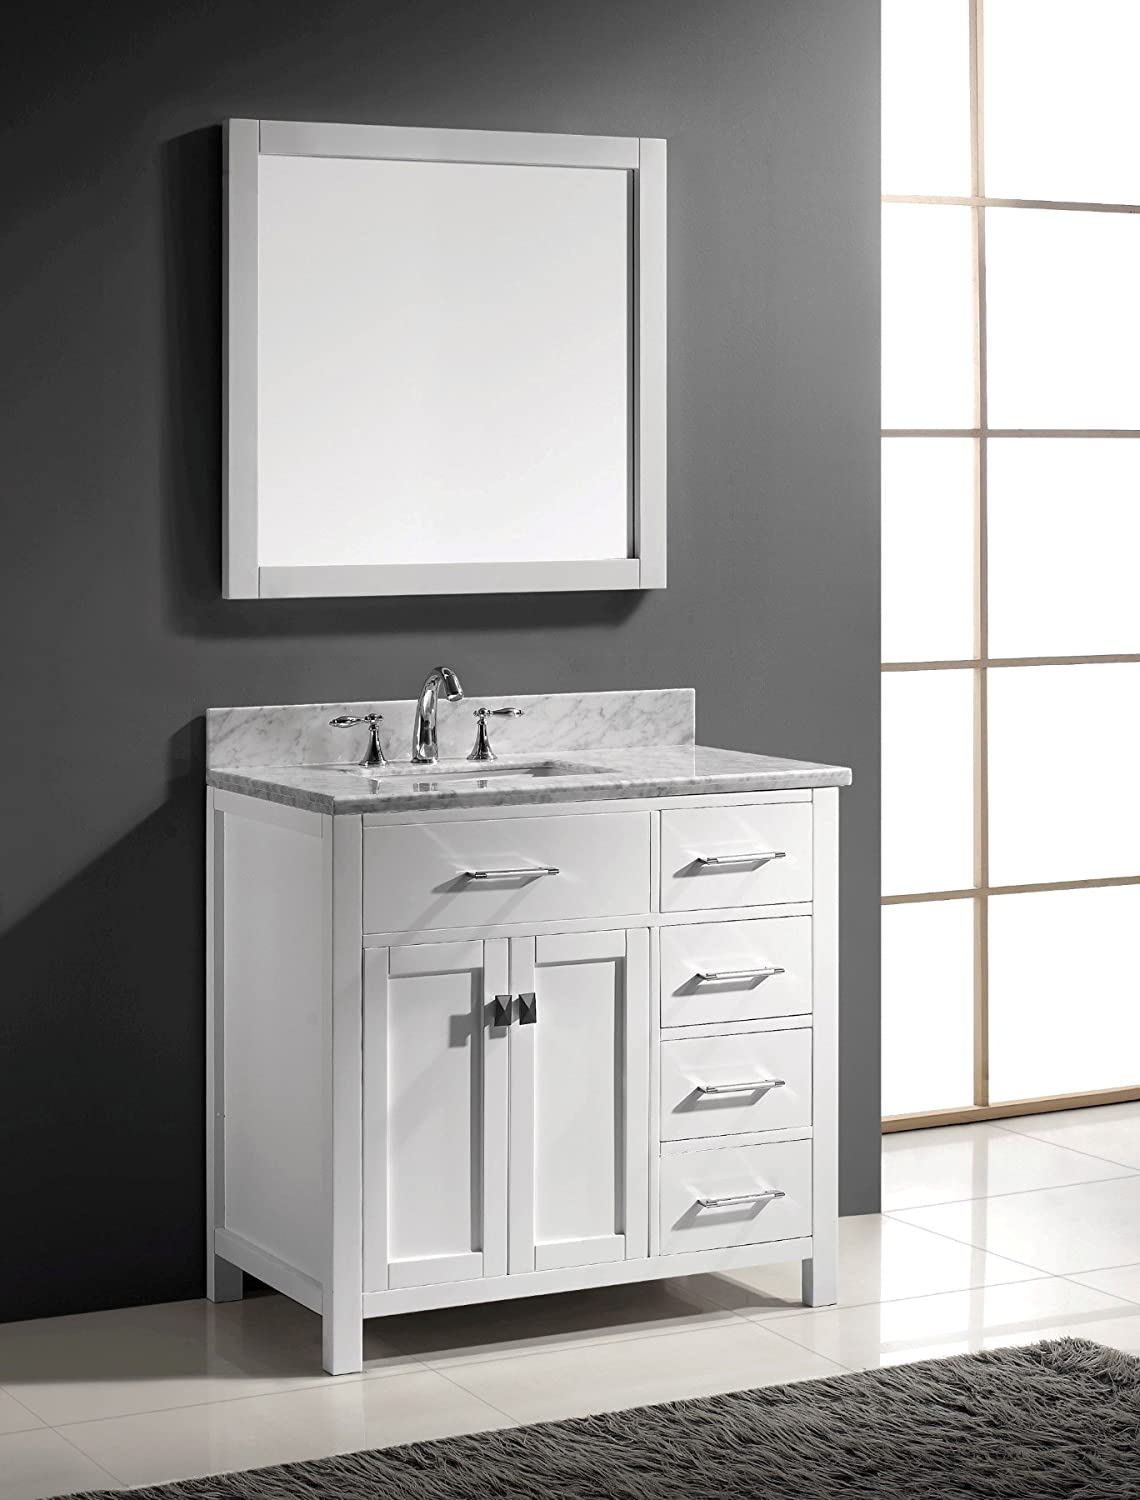 Virtu Usa Ms 2136r Wmsq Wh 36 Inch Caroline Parkway Single Square Sink Bathroom Vanity White Amazon Com